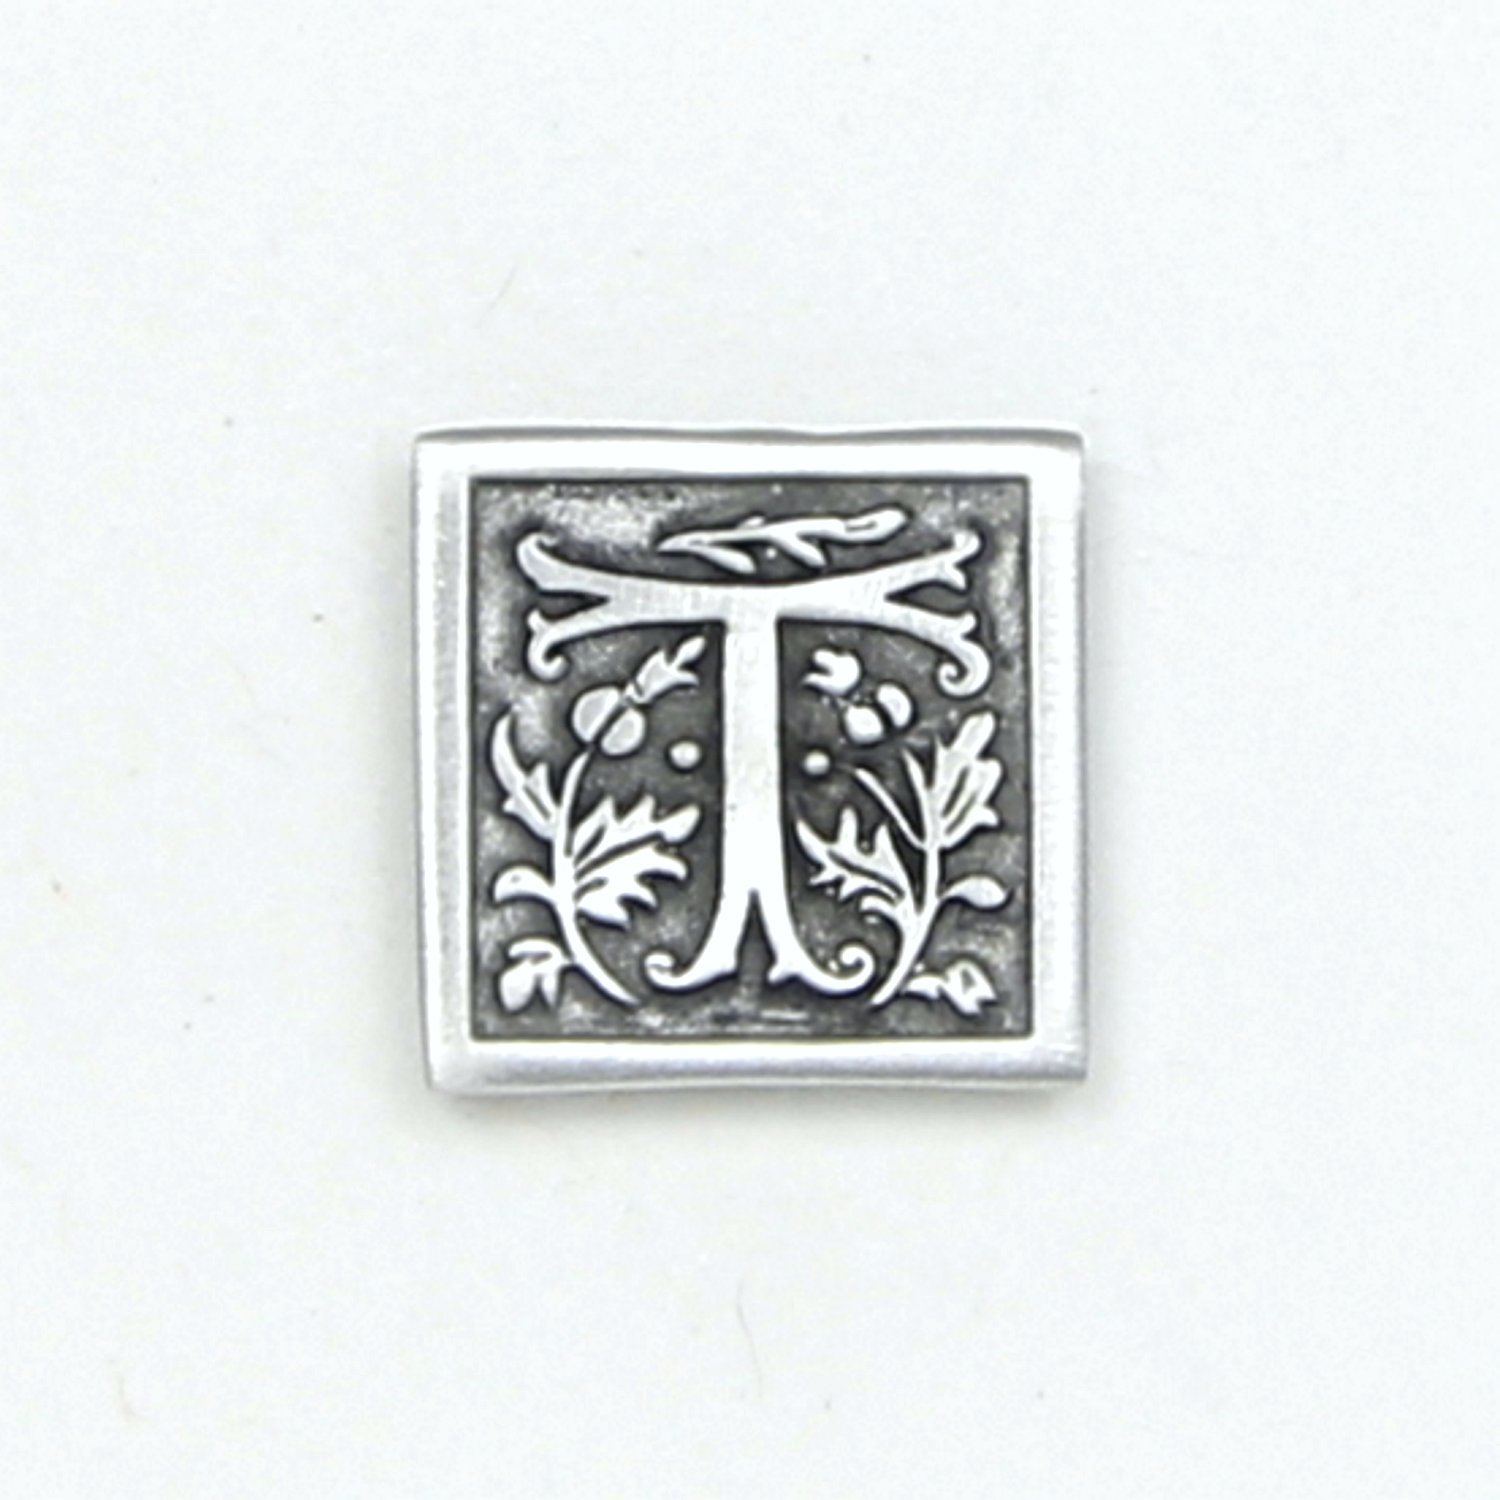 Letter '' T '' Initial Pin - Magnetic Back Closure - No holes in Clothes - Handcrafted Pewter Made in USA - Antique Finished